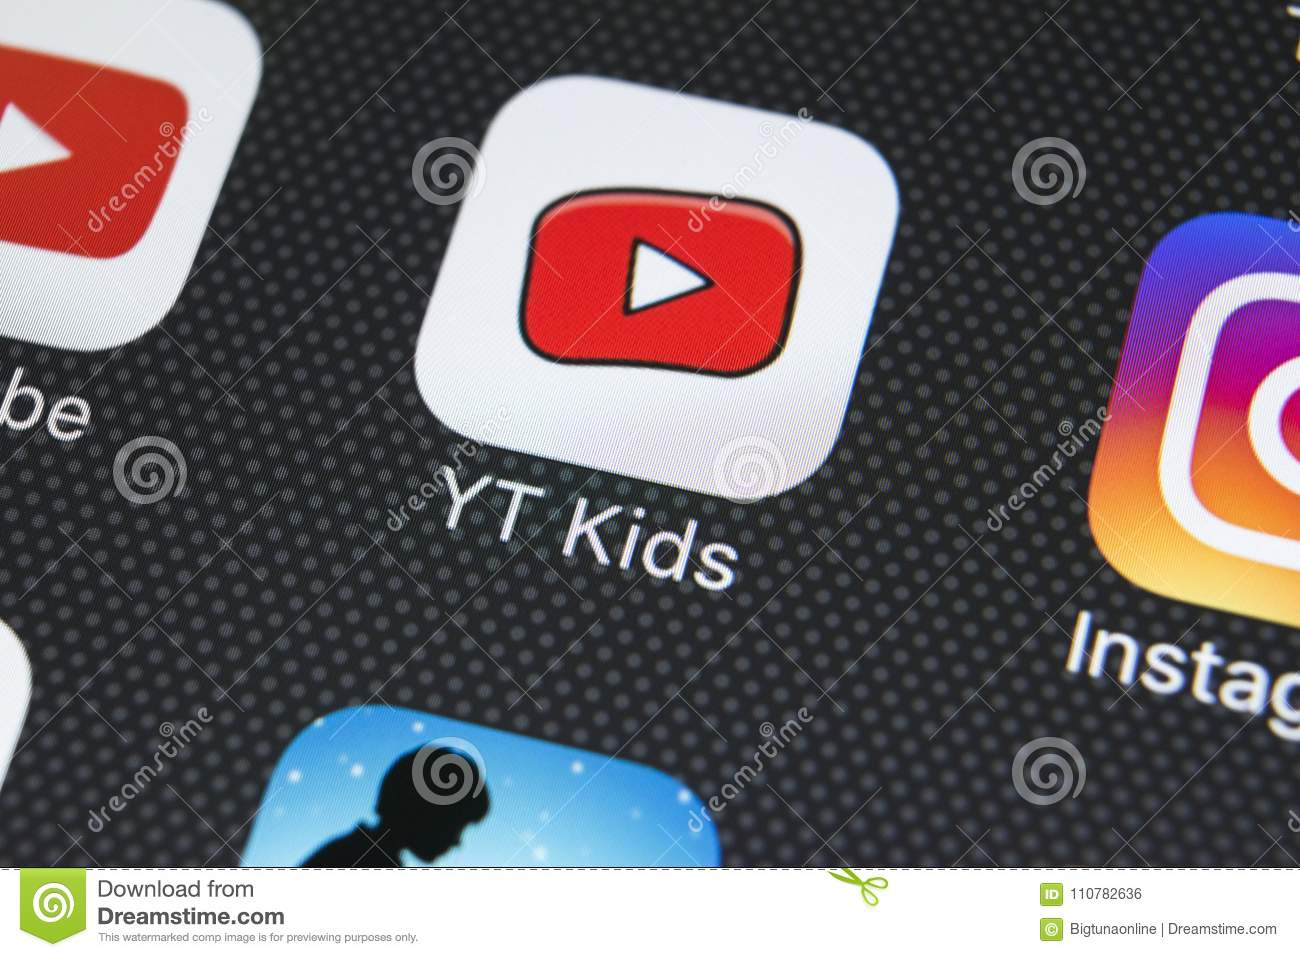 YouTube Kids Application Icon On Apple IPhone X Screen Close-up